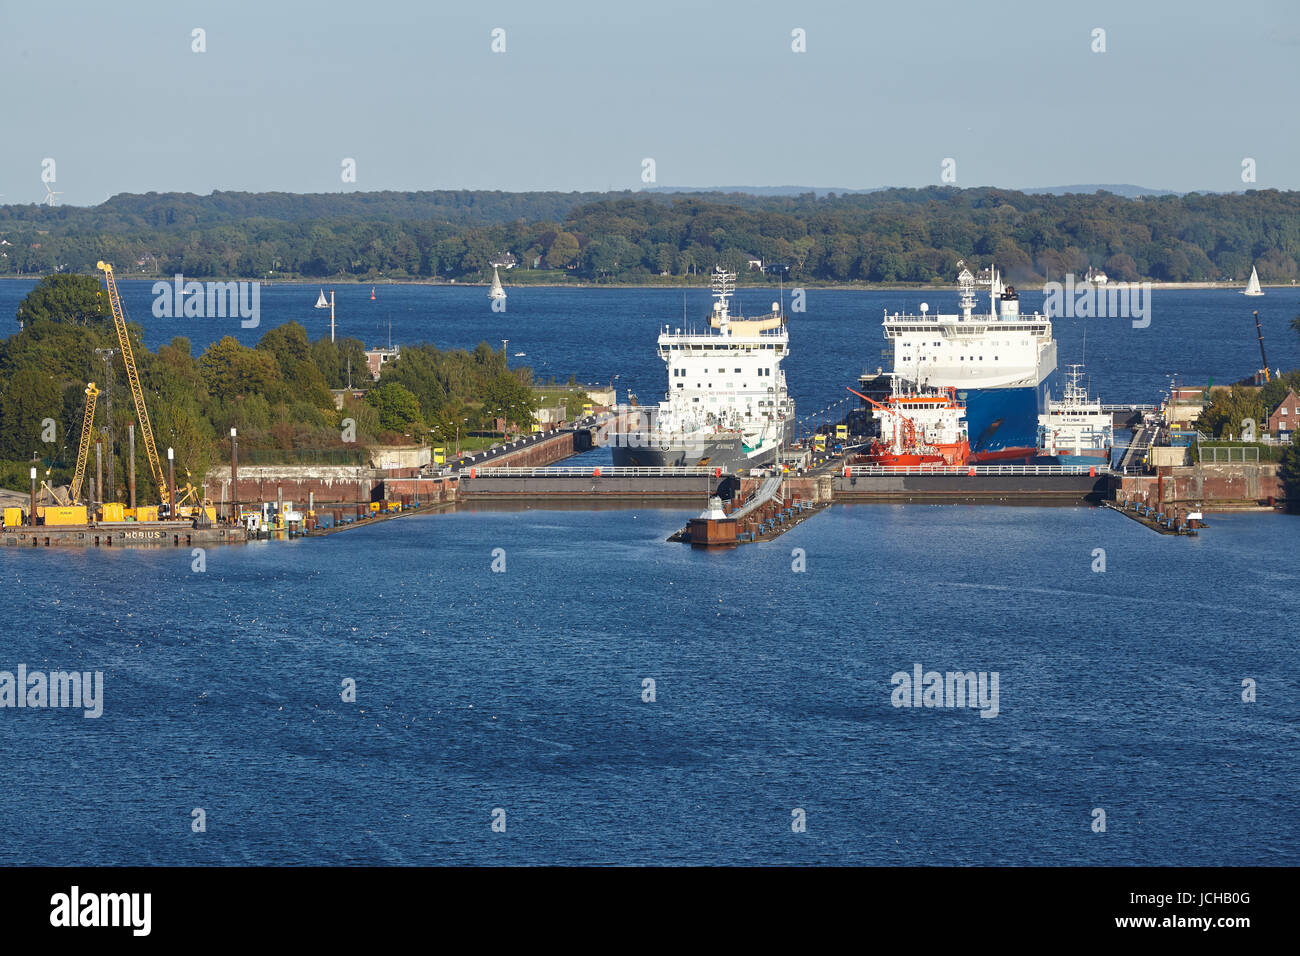 The tanker Evinco, genral cargo ship Wilson Hawk, tanker Eduard Essberger and Ro-ro cargo vessel Finnbreeze at the - Stock Image